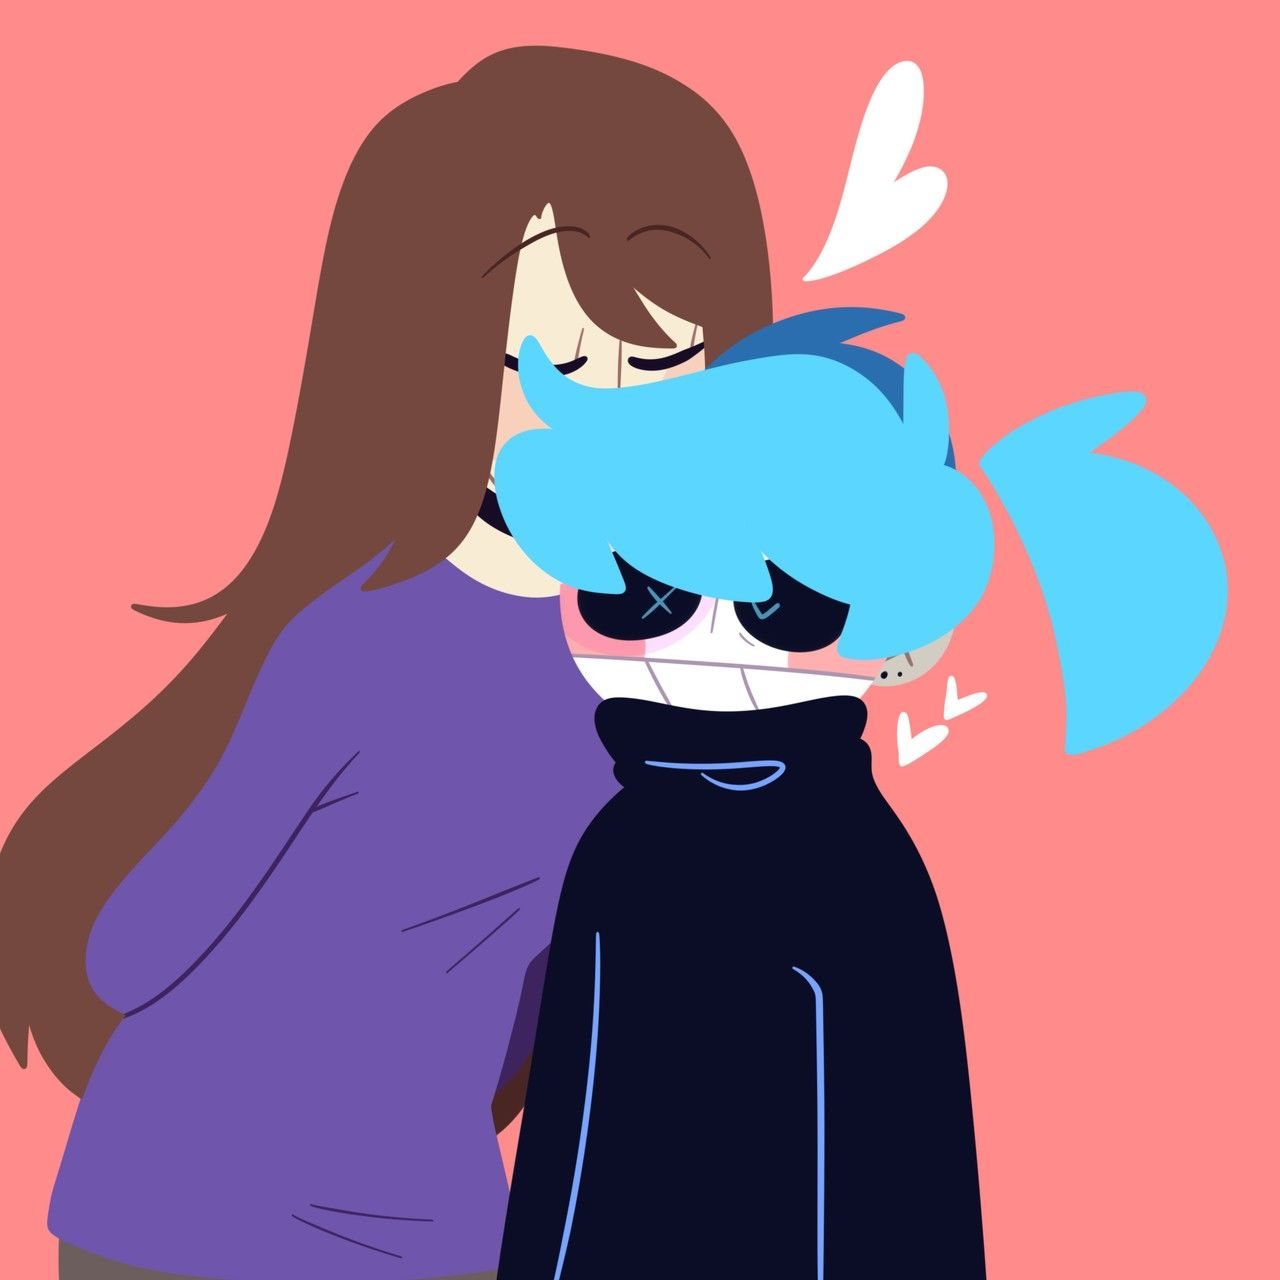 Pin By Kazekagegodaime On Sallyface With Images Sally Face Game Epic Art Girls In Love